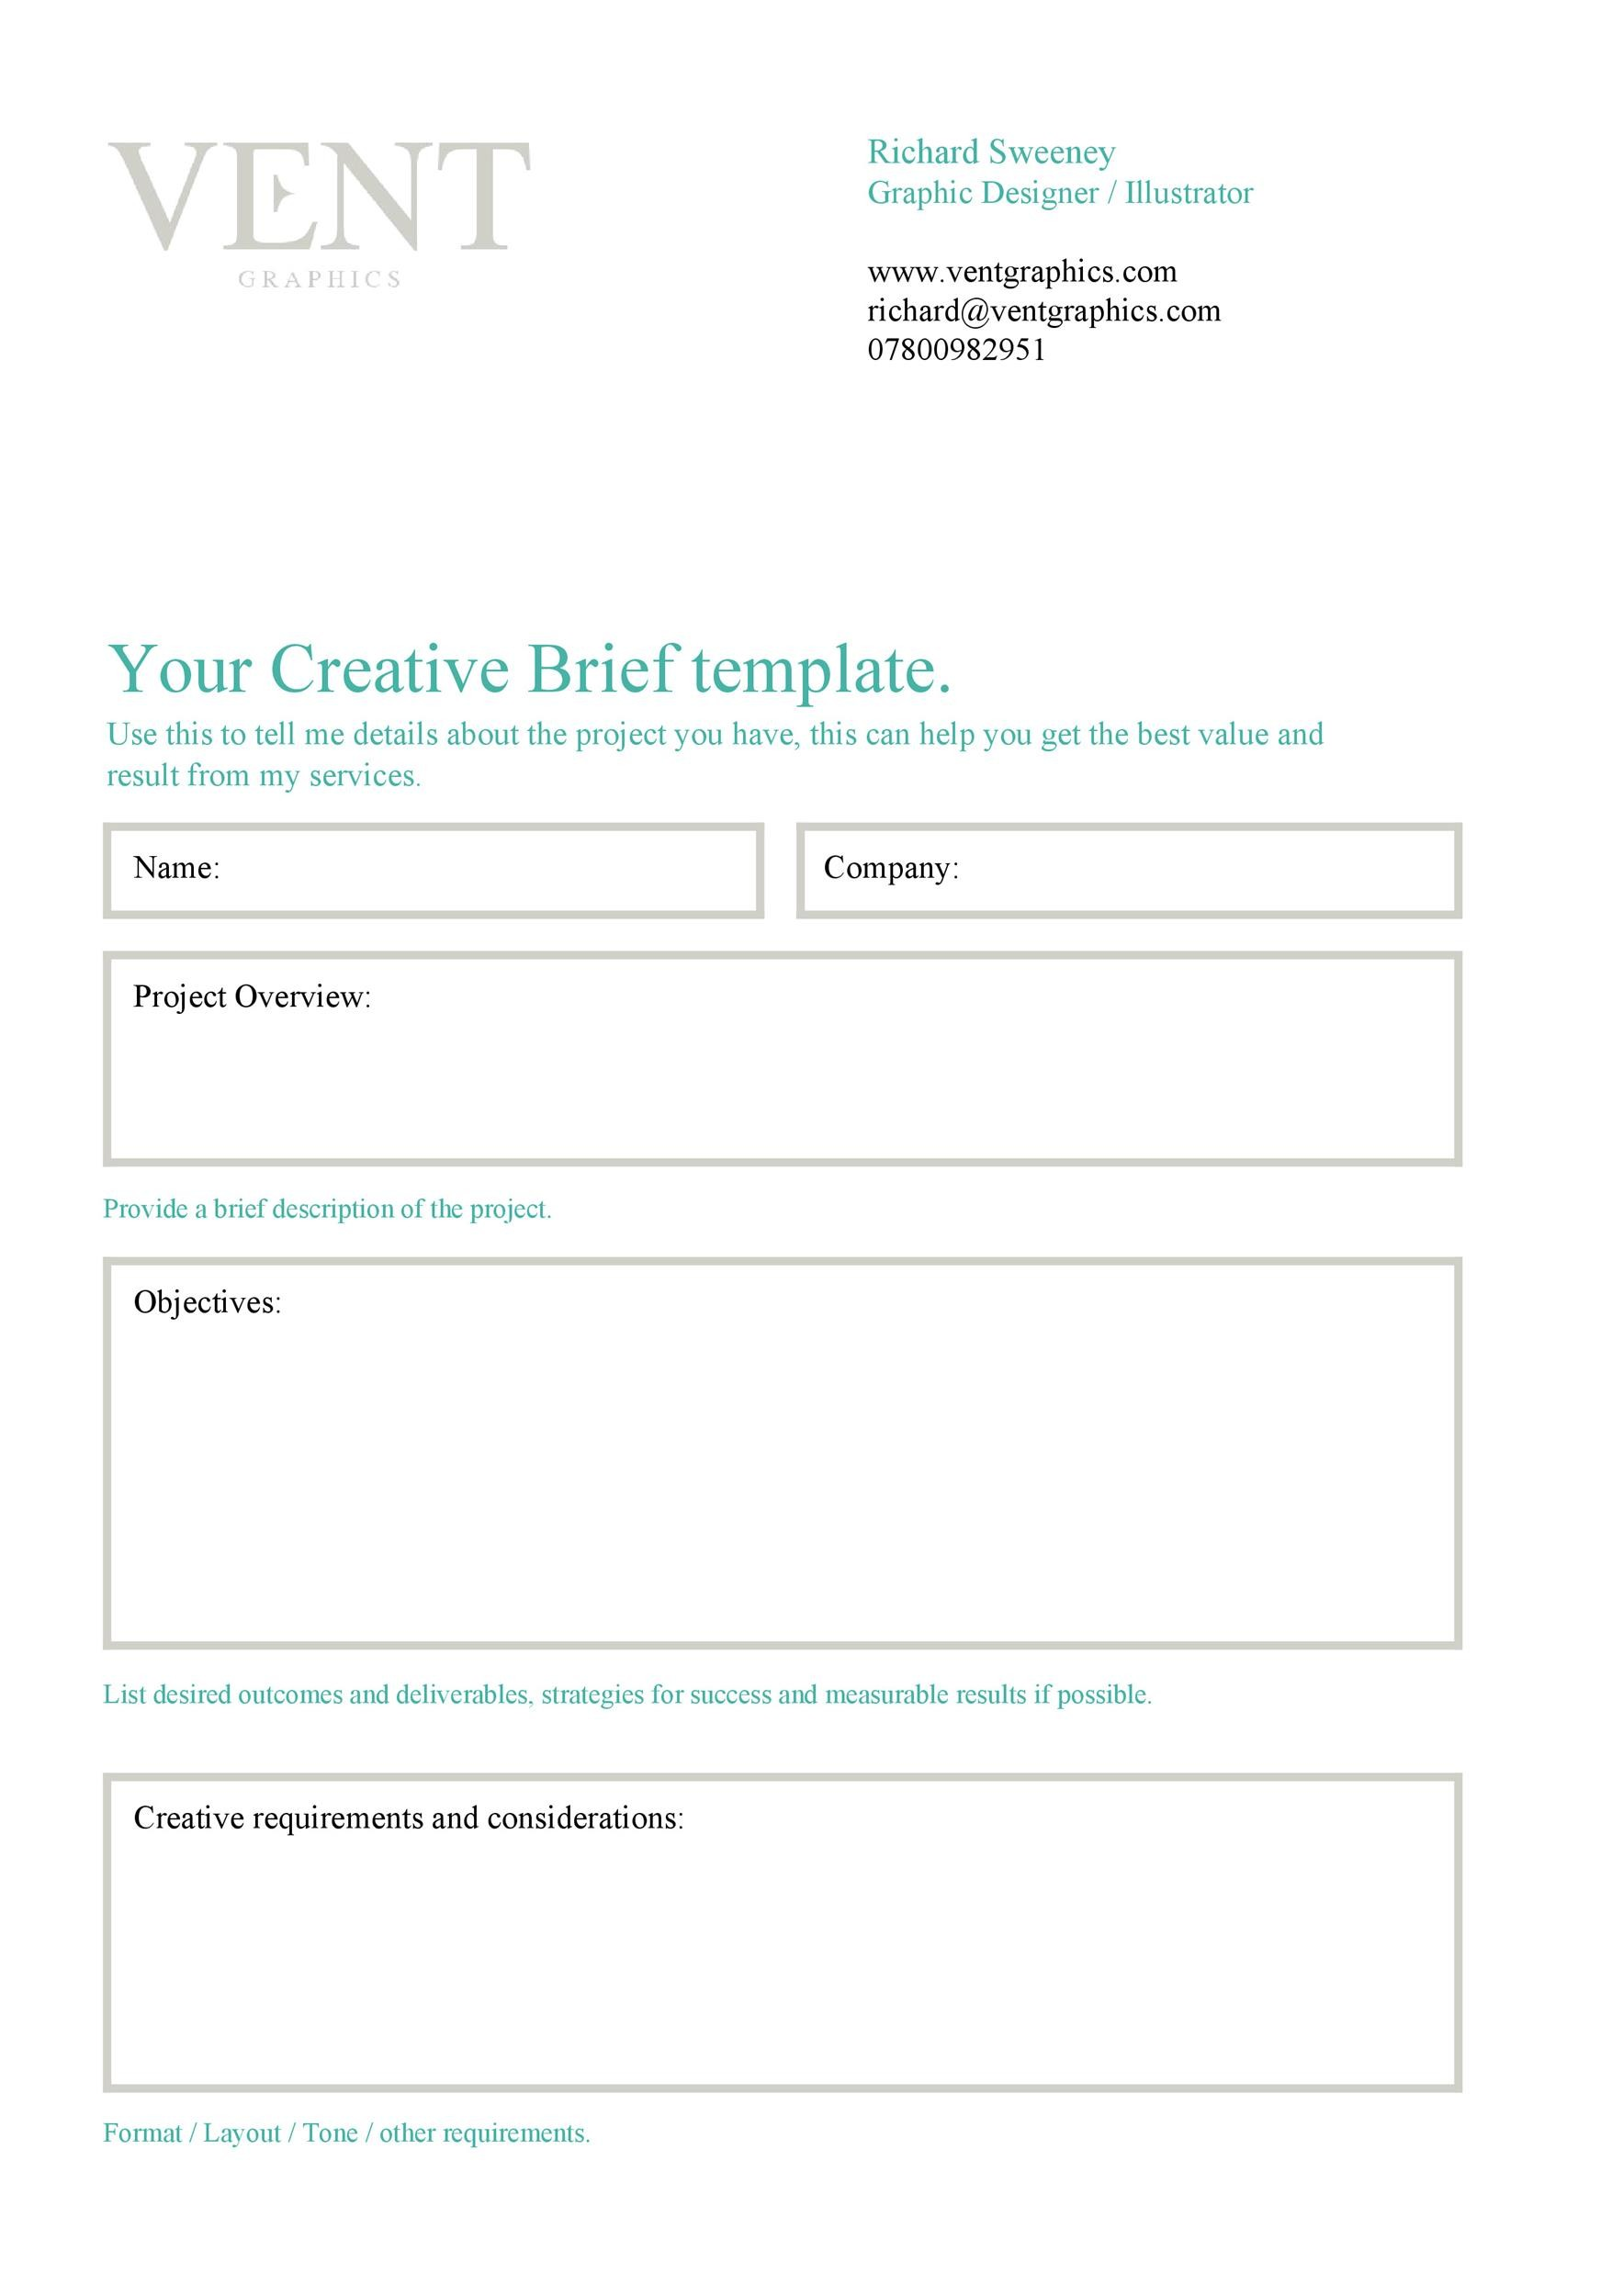 Free design brief template 09